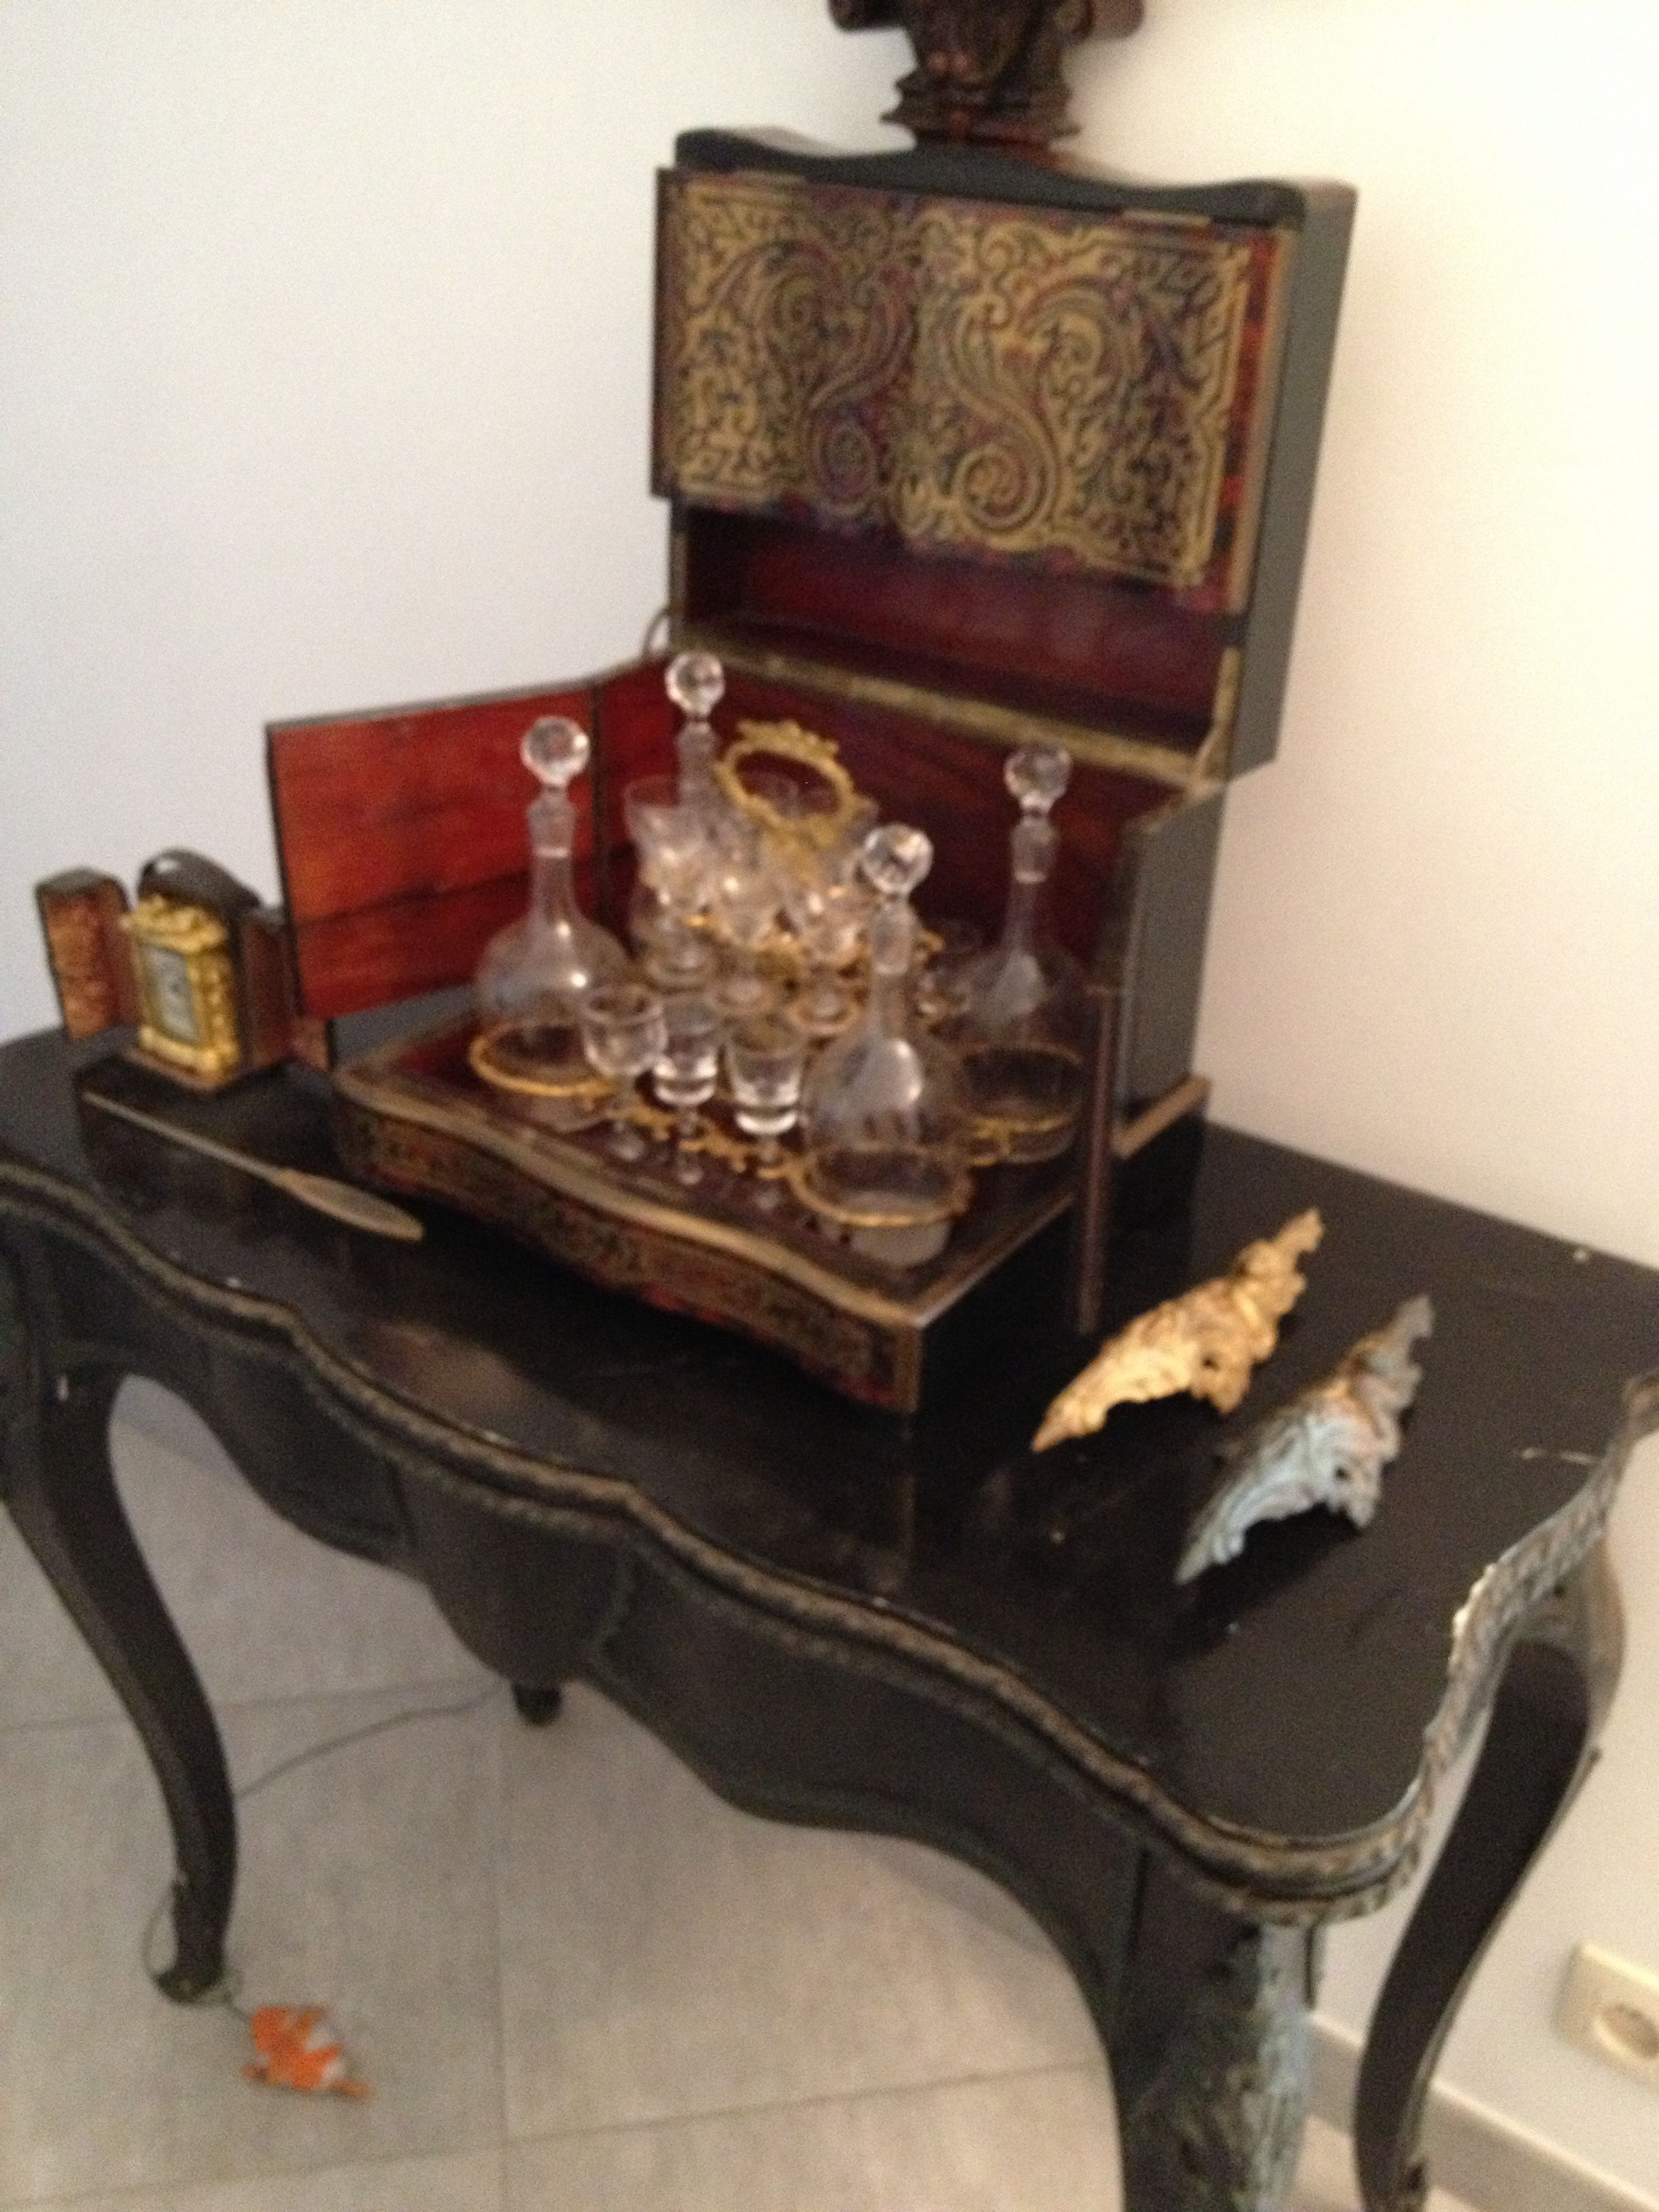 A great Napoleon III card table to restore. I already started restoring and cleaning the bronze ornaments.